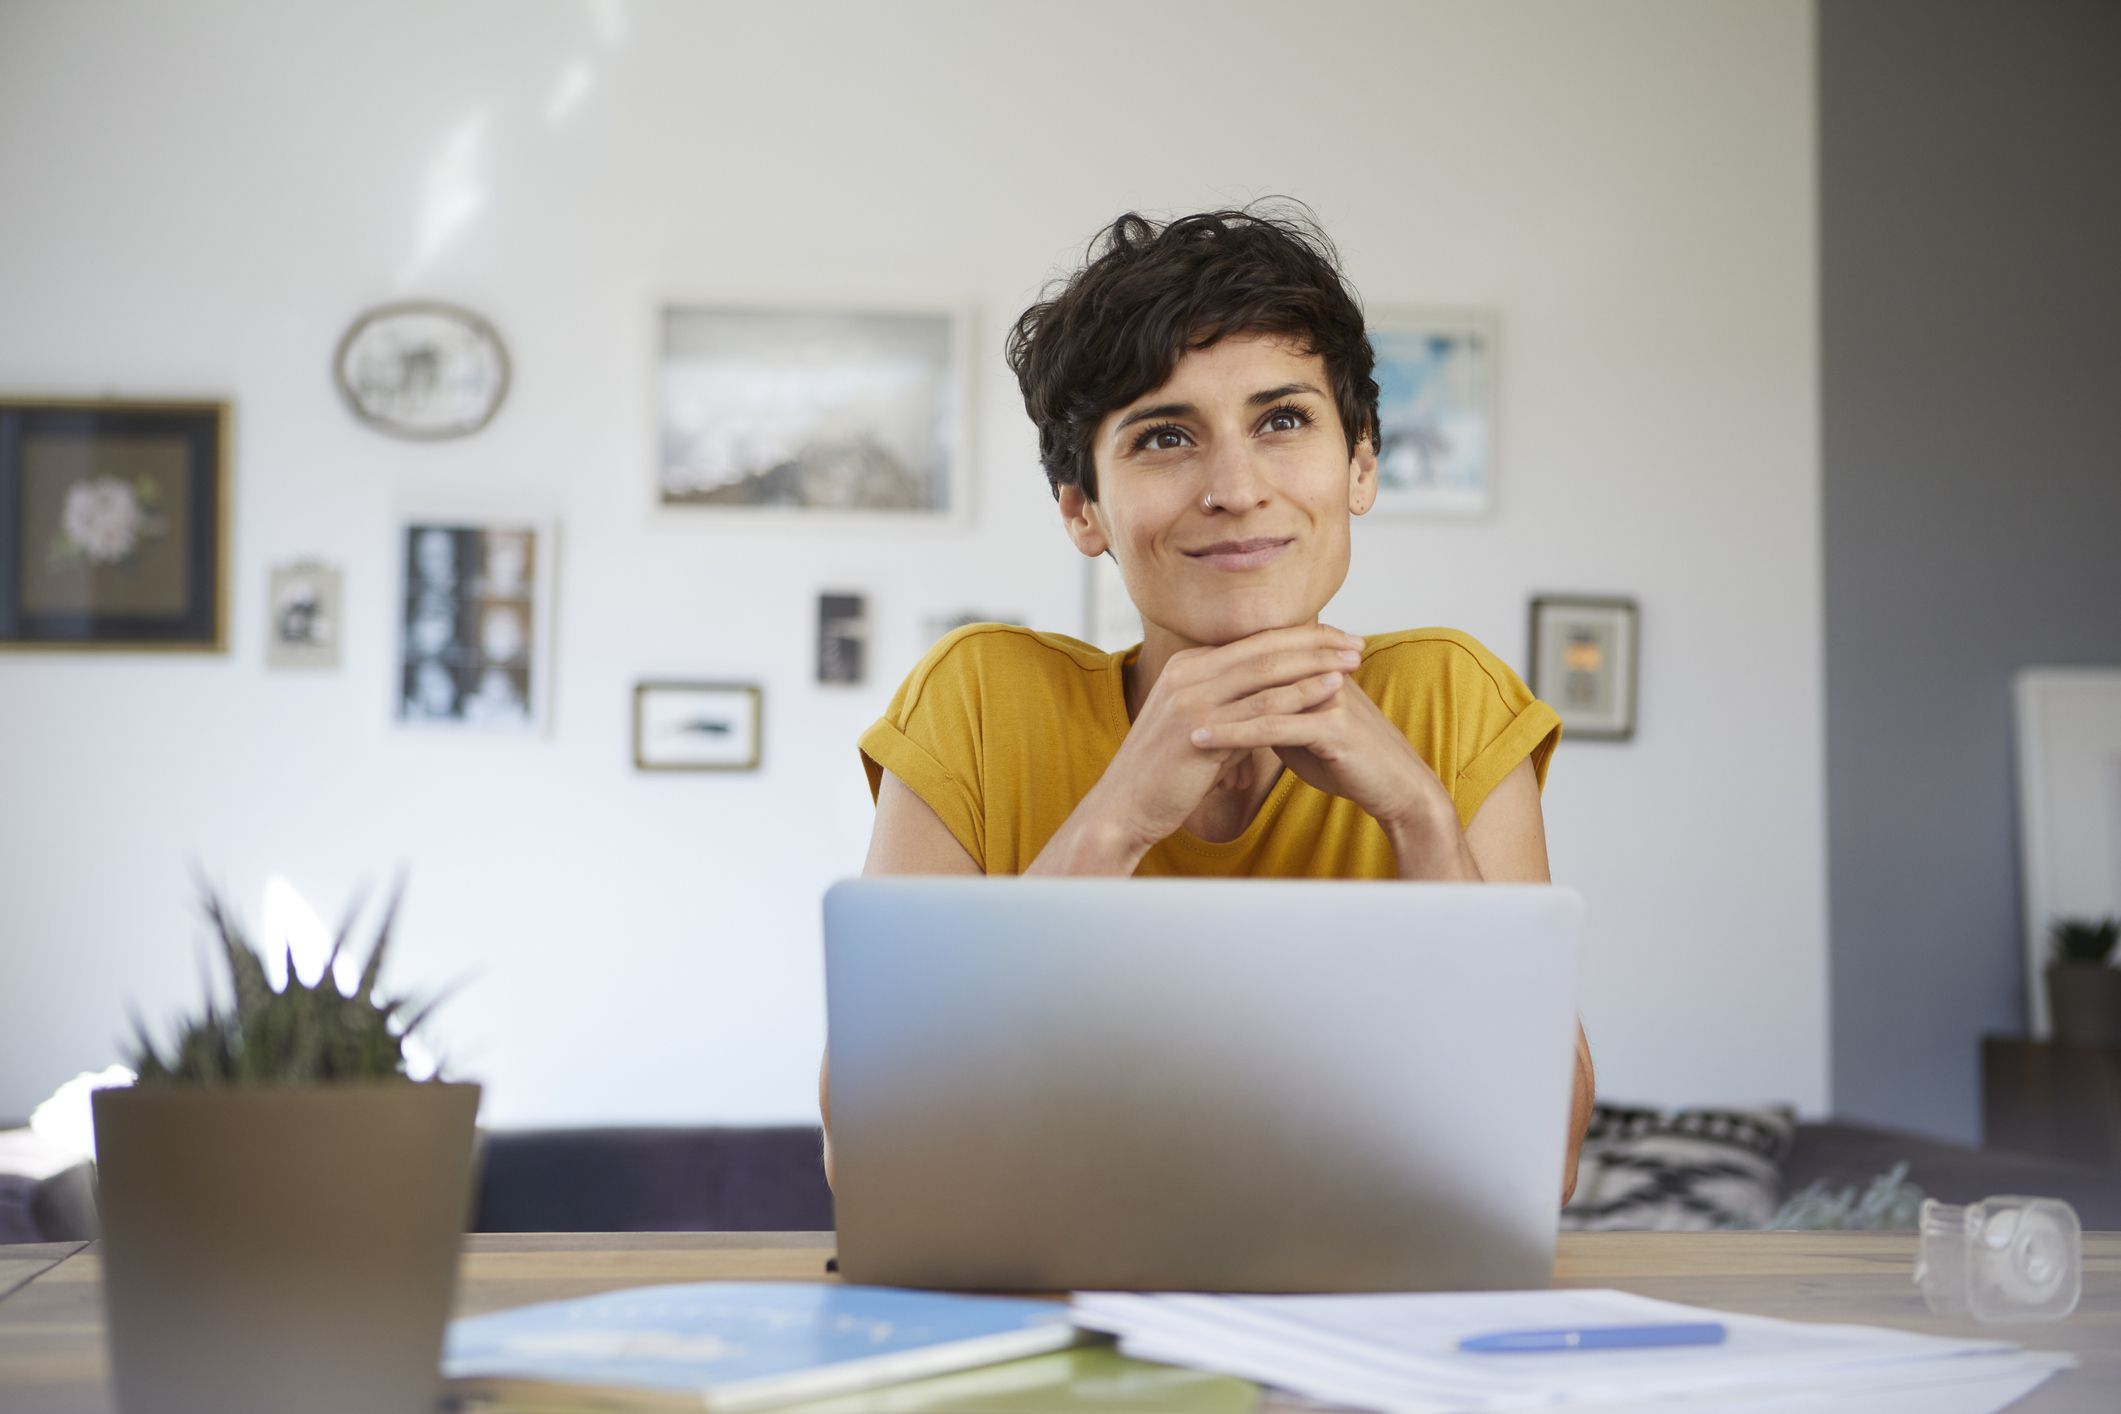 Woman sits in front of laptop, smiles into distance